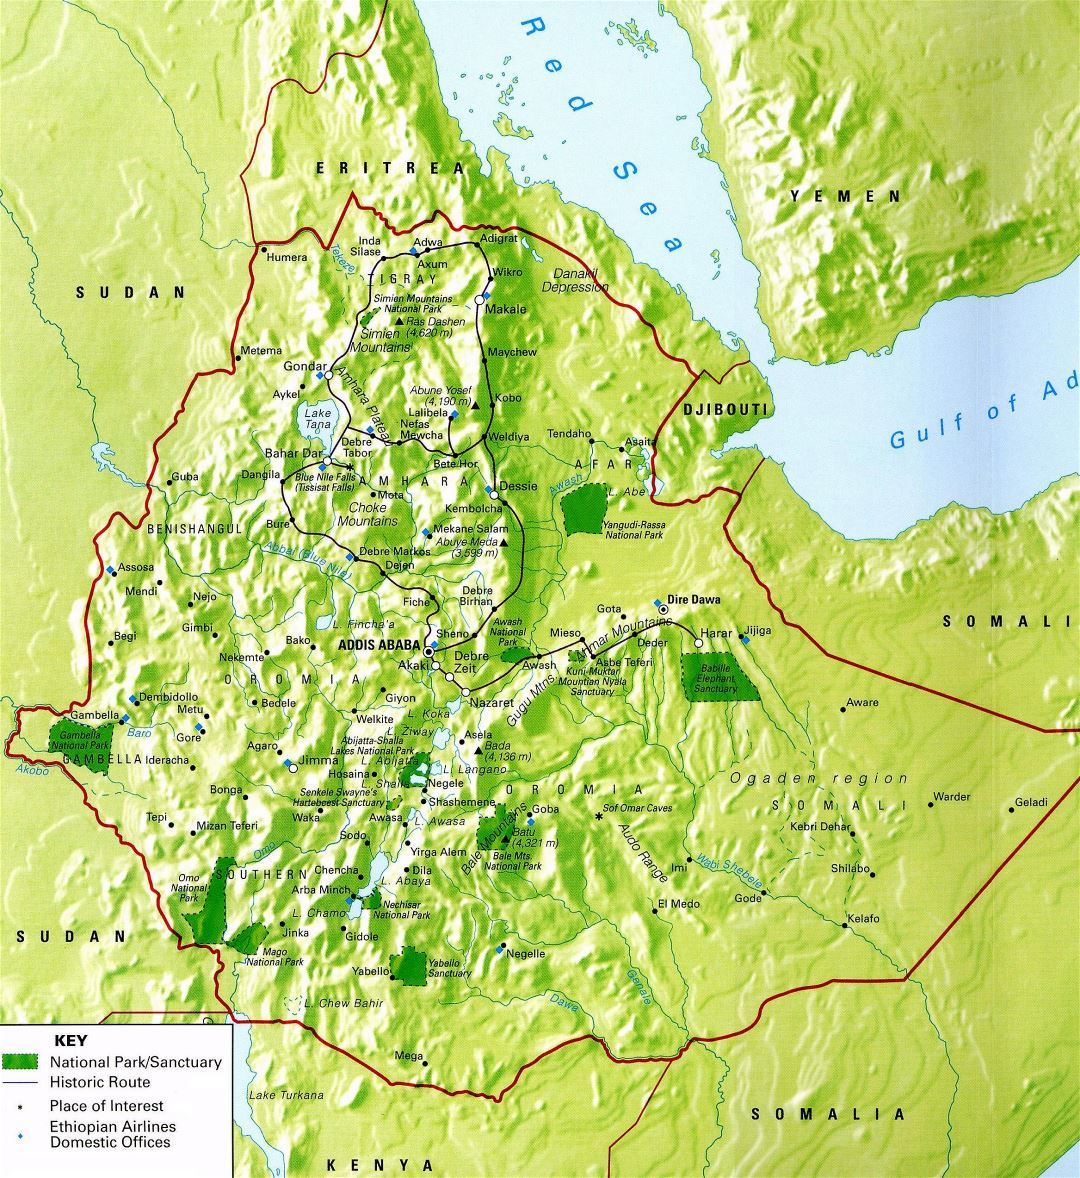 Large detailed national parks and points of interests map of Ethiopia